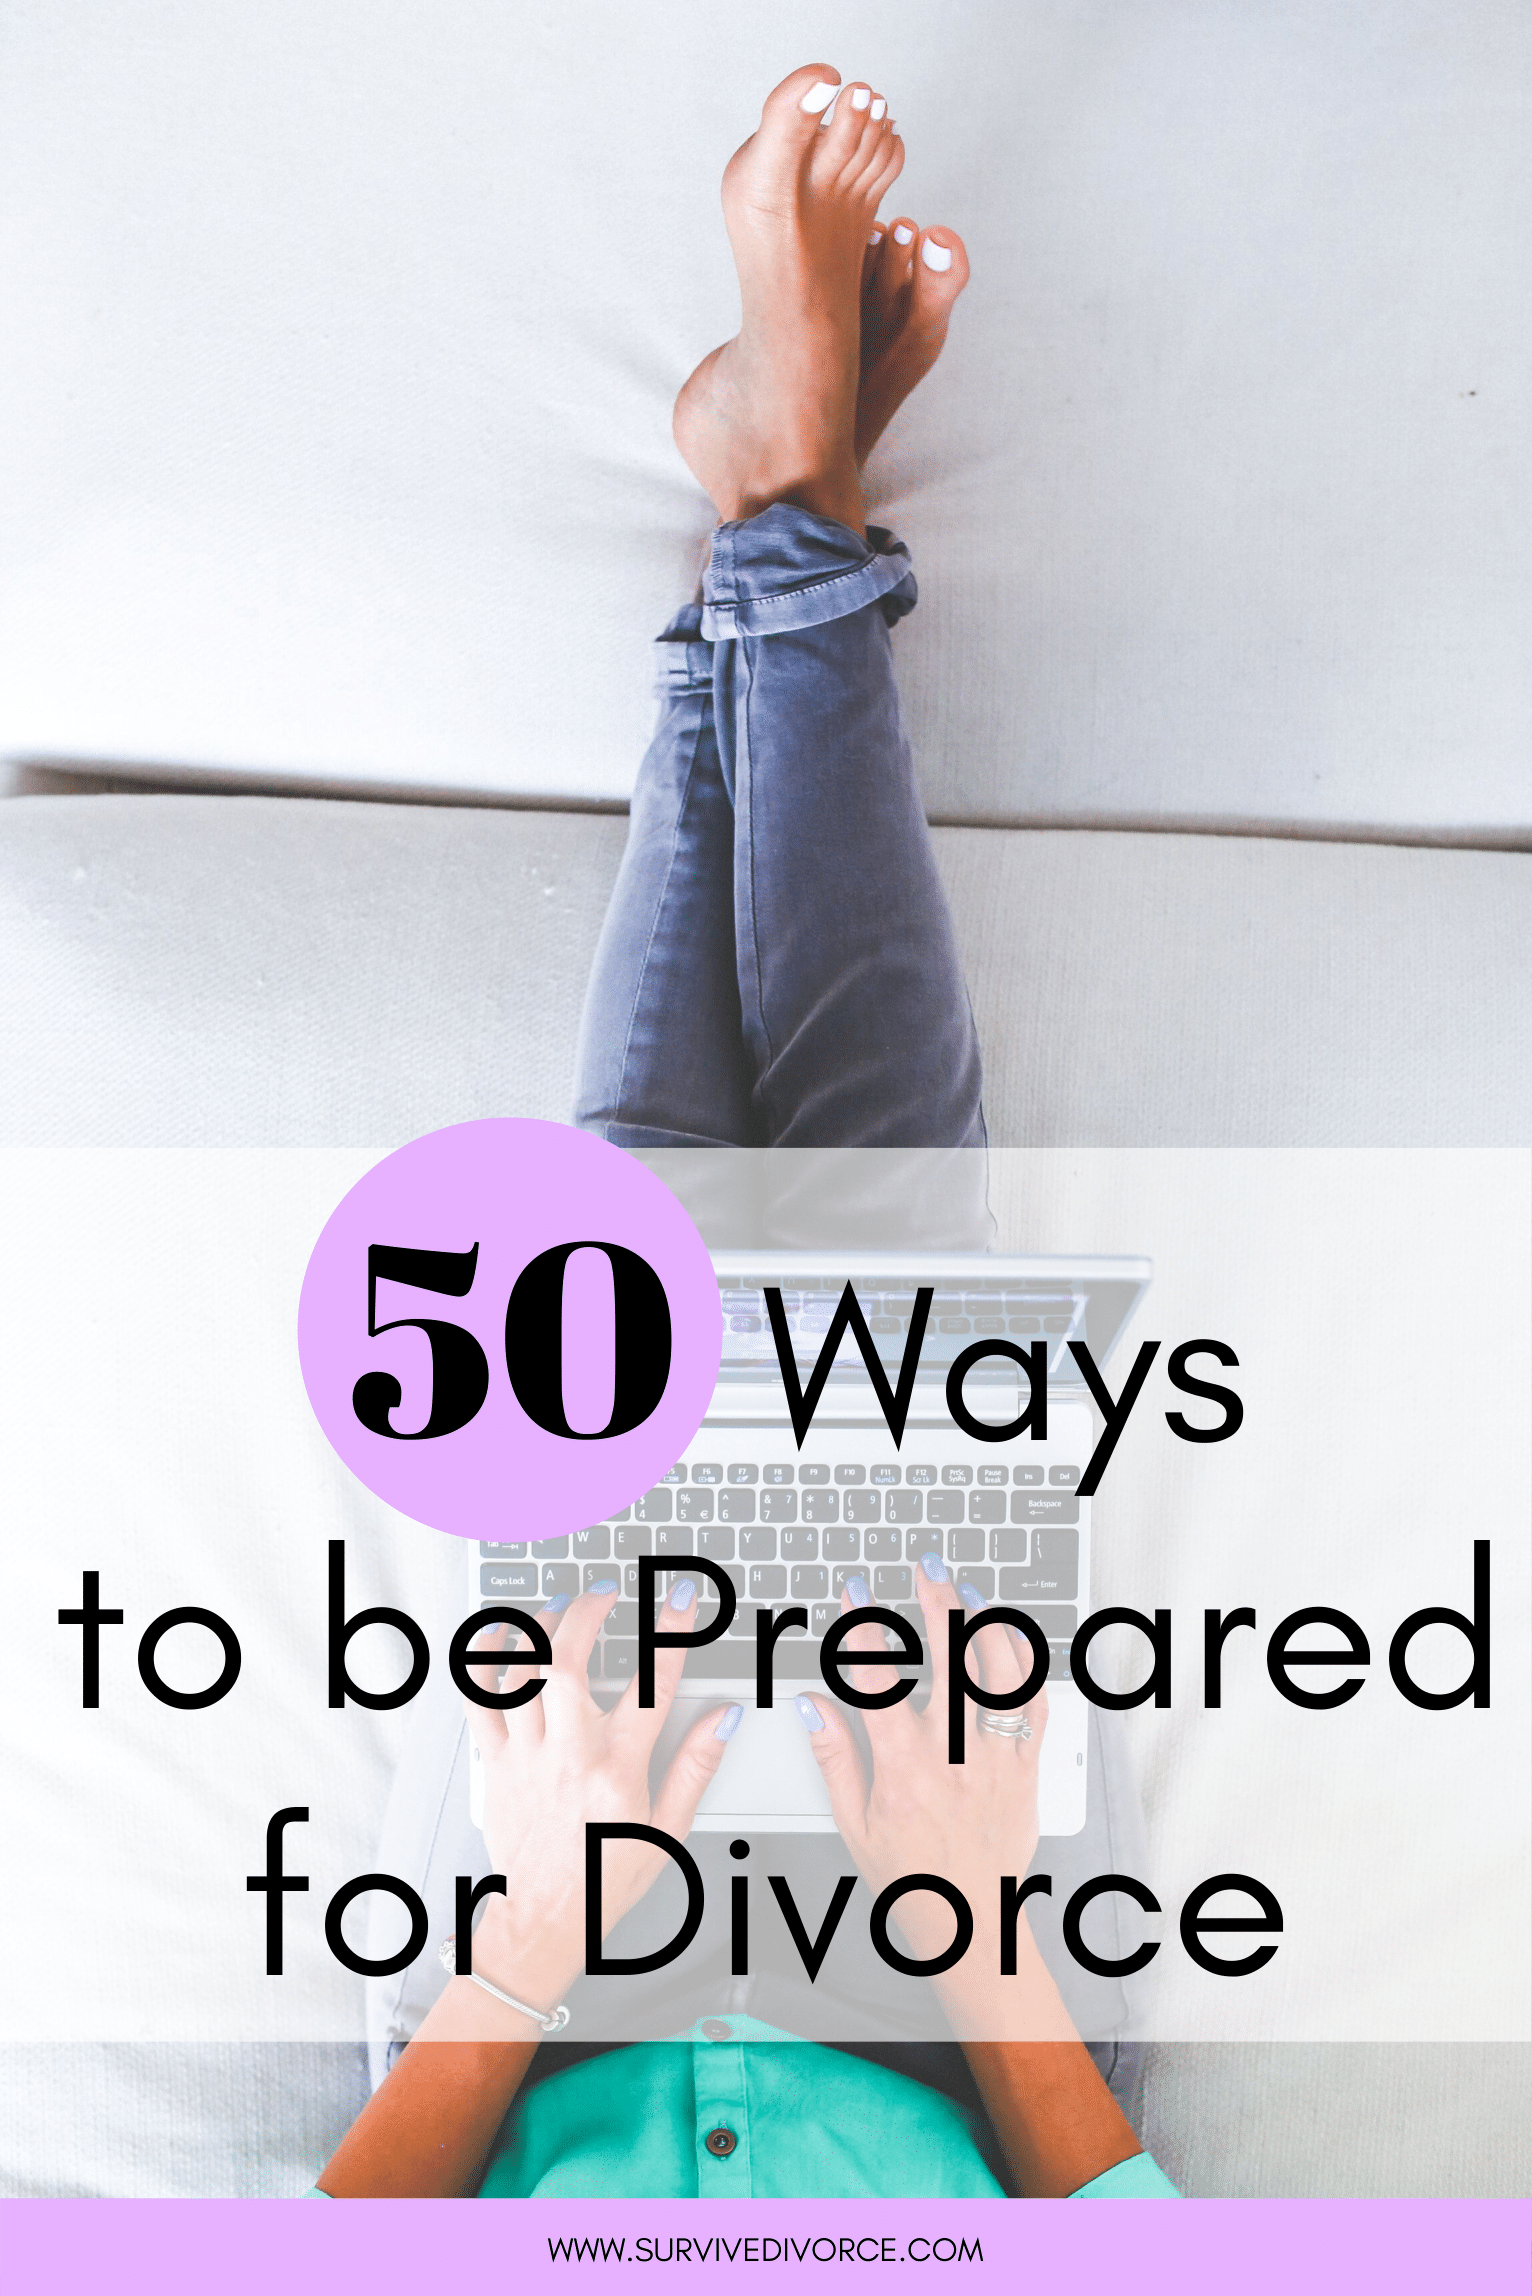 For many, divorce can be a long and exhausting process to go through. No matter what stage of the divorce process you are in, this divorce preparation guide will be of help for you. Get a game plan together, face your finances and more with these 50 ways to prepare for divorce. #divorce #divorceadvice #divorcehelp #divorce